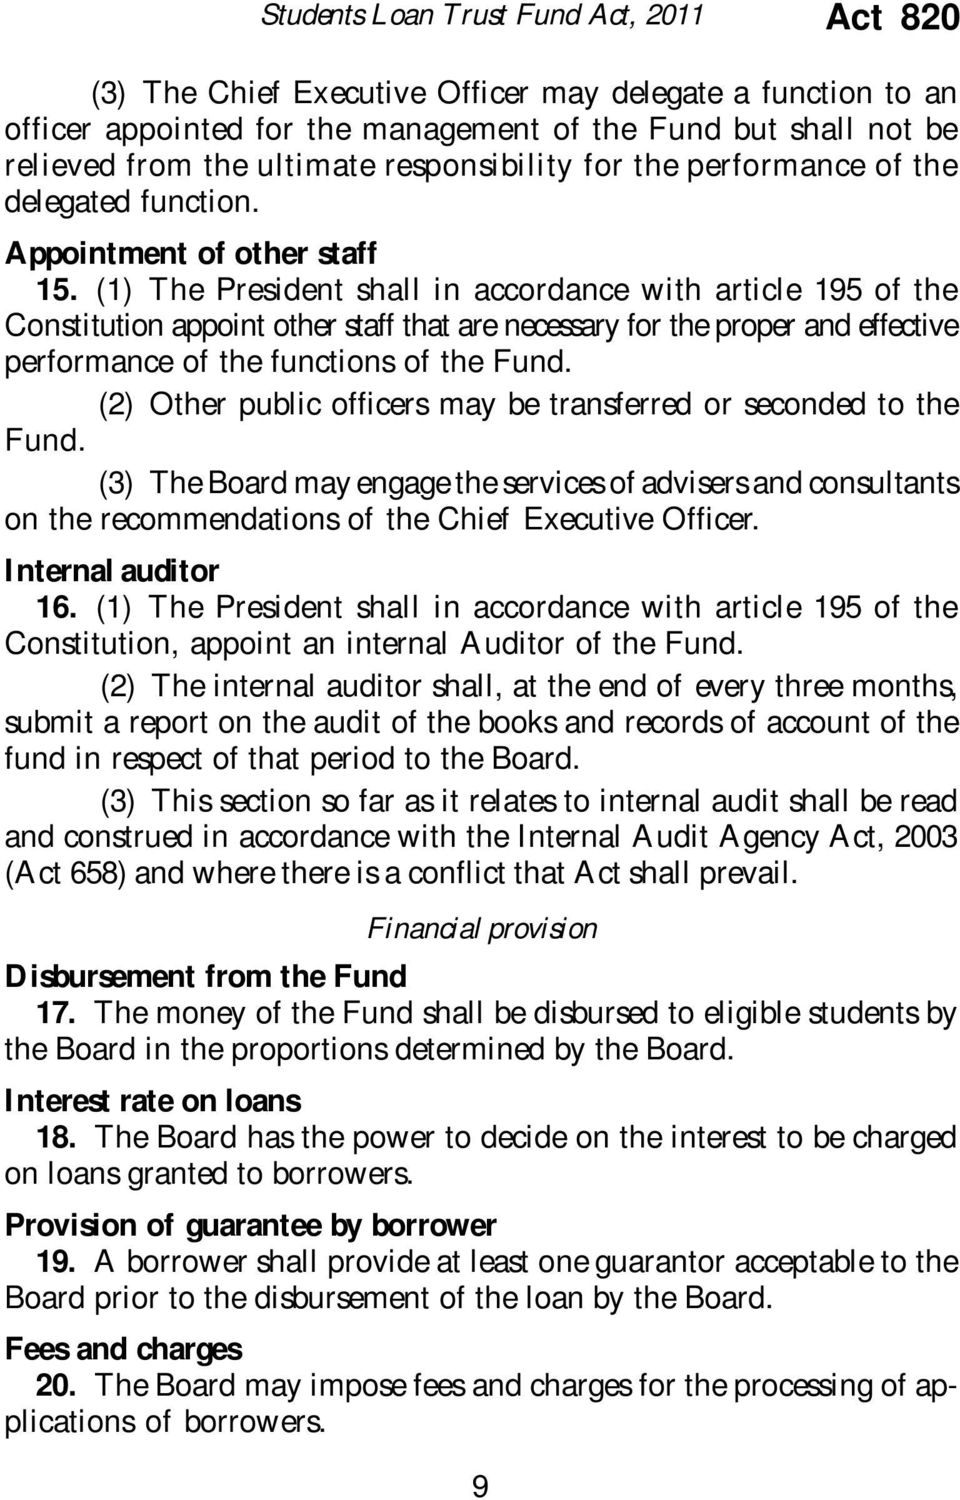 (1) The President shall in accordance with article 195 of the Constitution appoint other staff that are necessary for the proper and effective performance of the functions of the Fund.